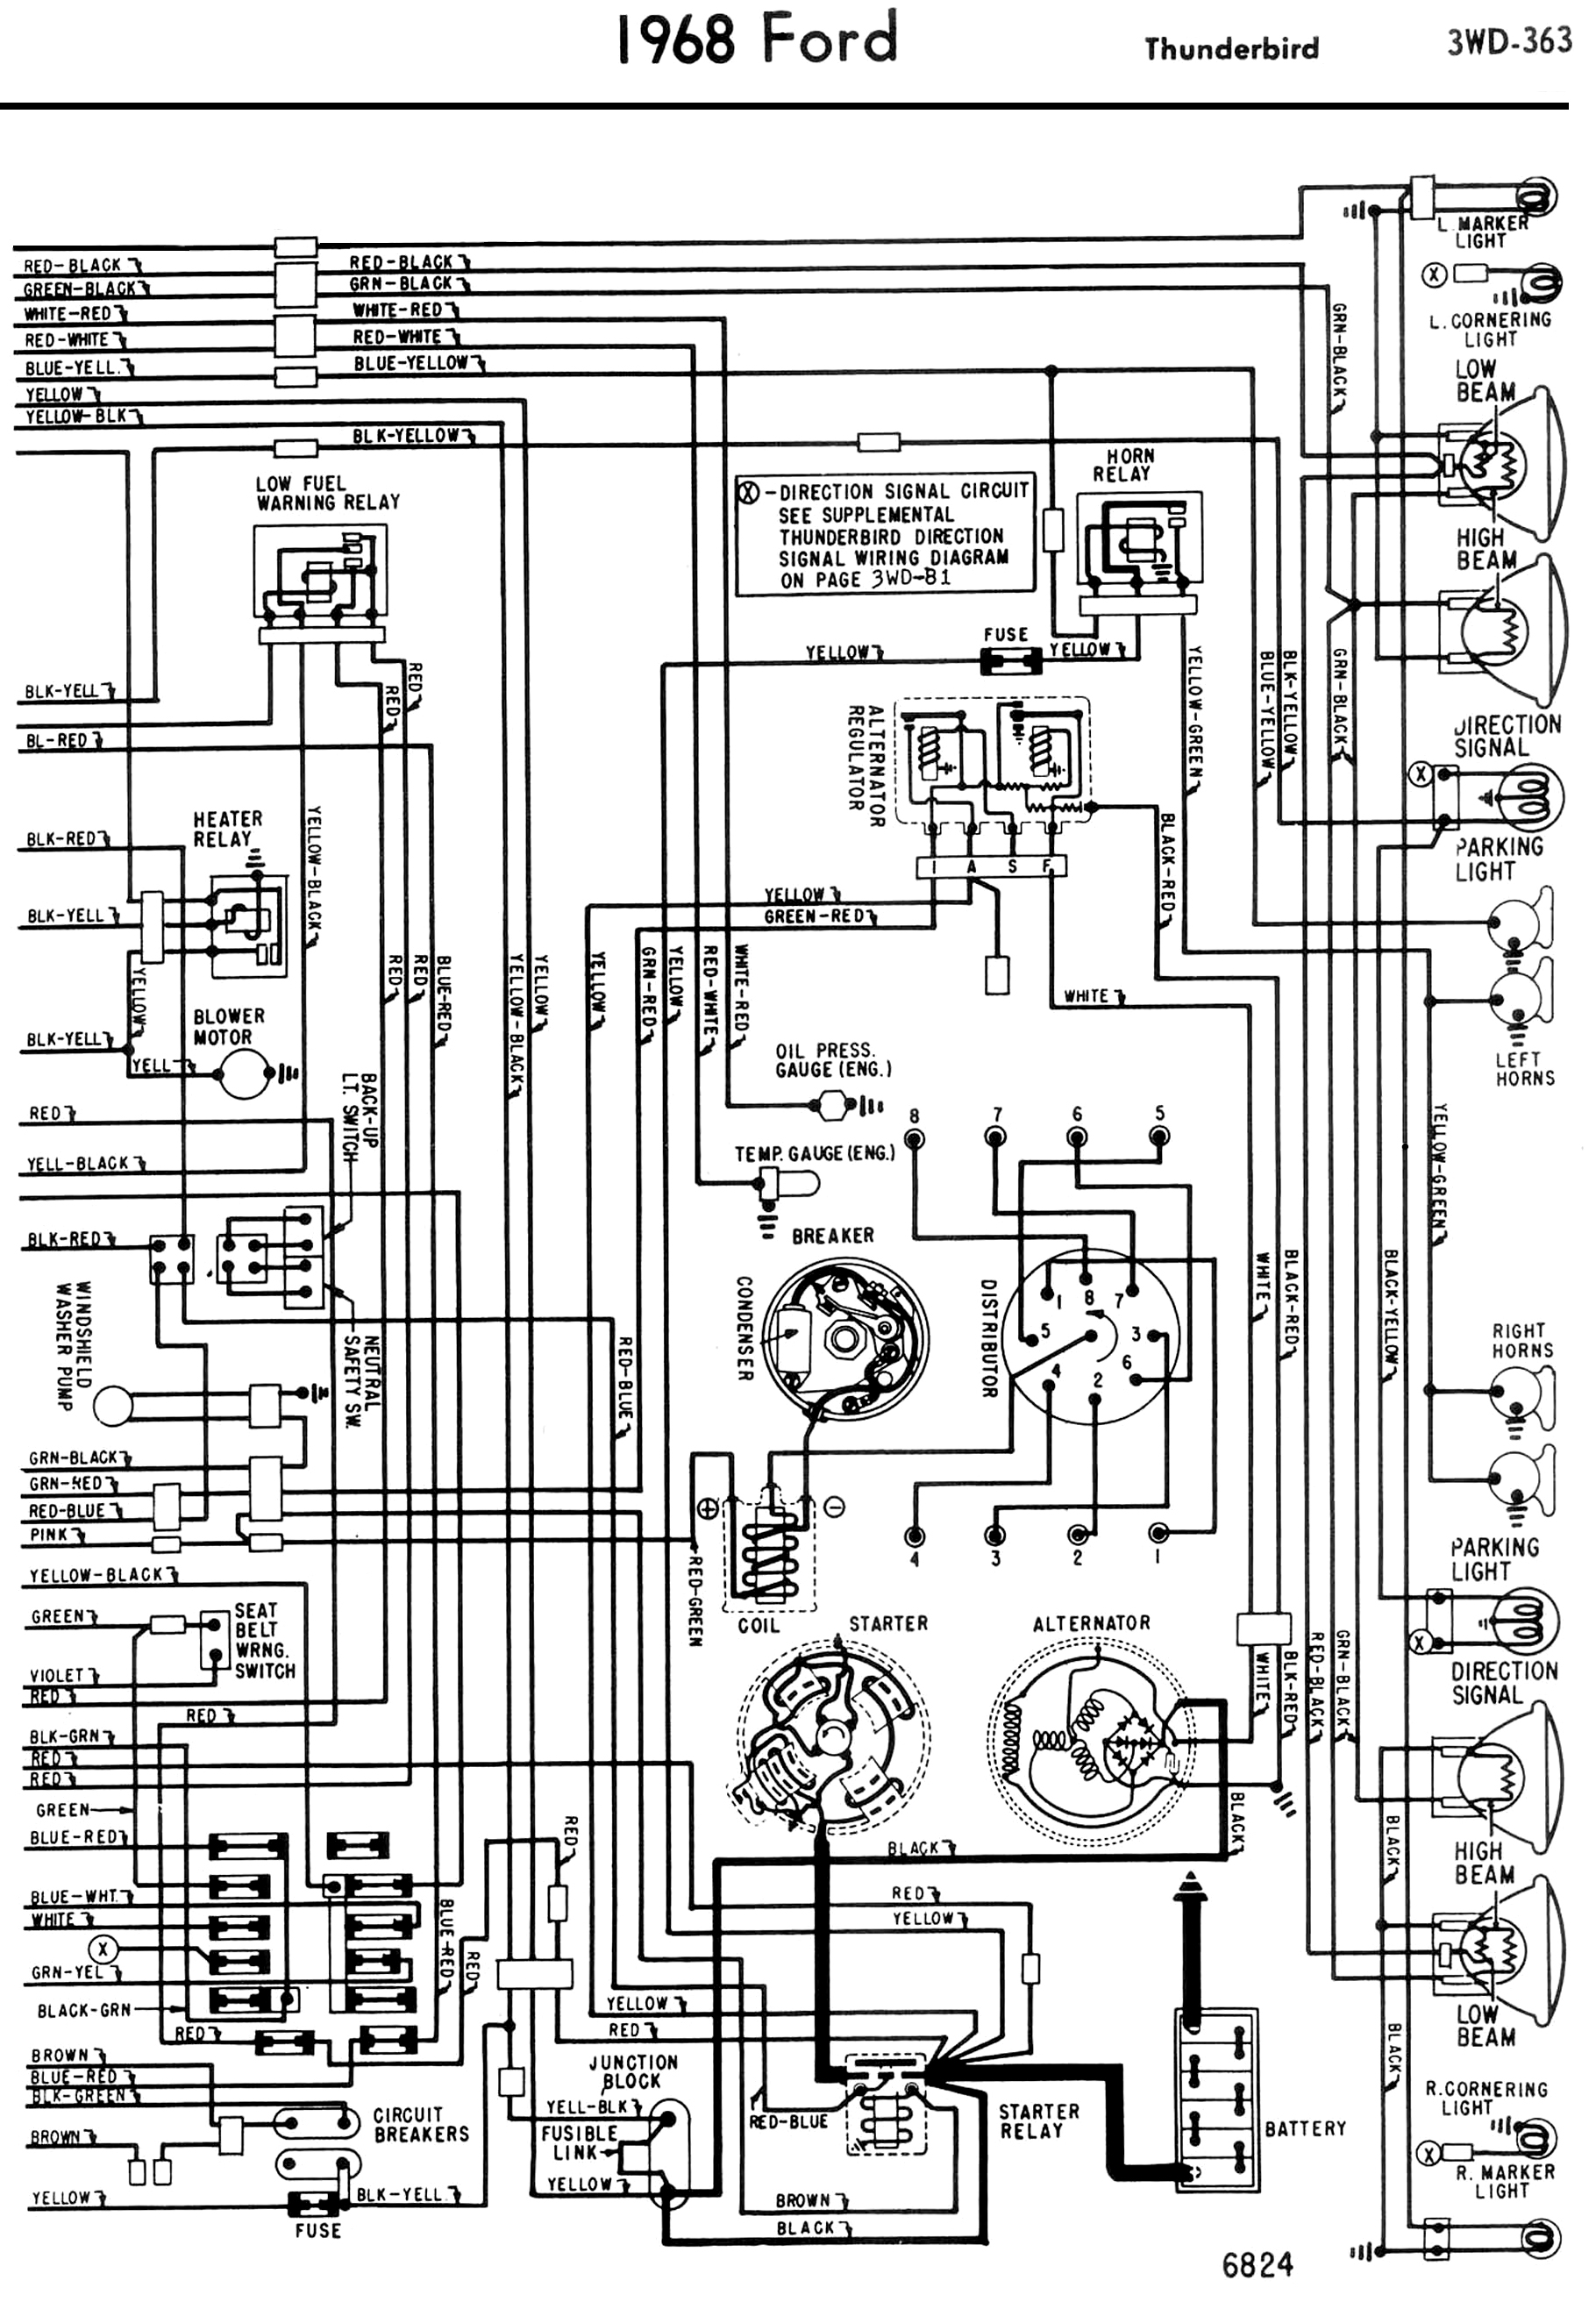 hight resolution of thunderbird wiring diagram wiring diagram name 1988 ford thunderbird wiring diagram ford thunderbird wiring diagram